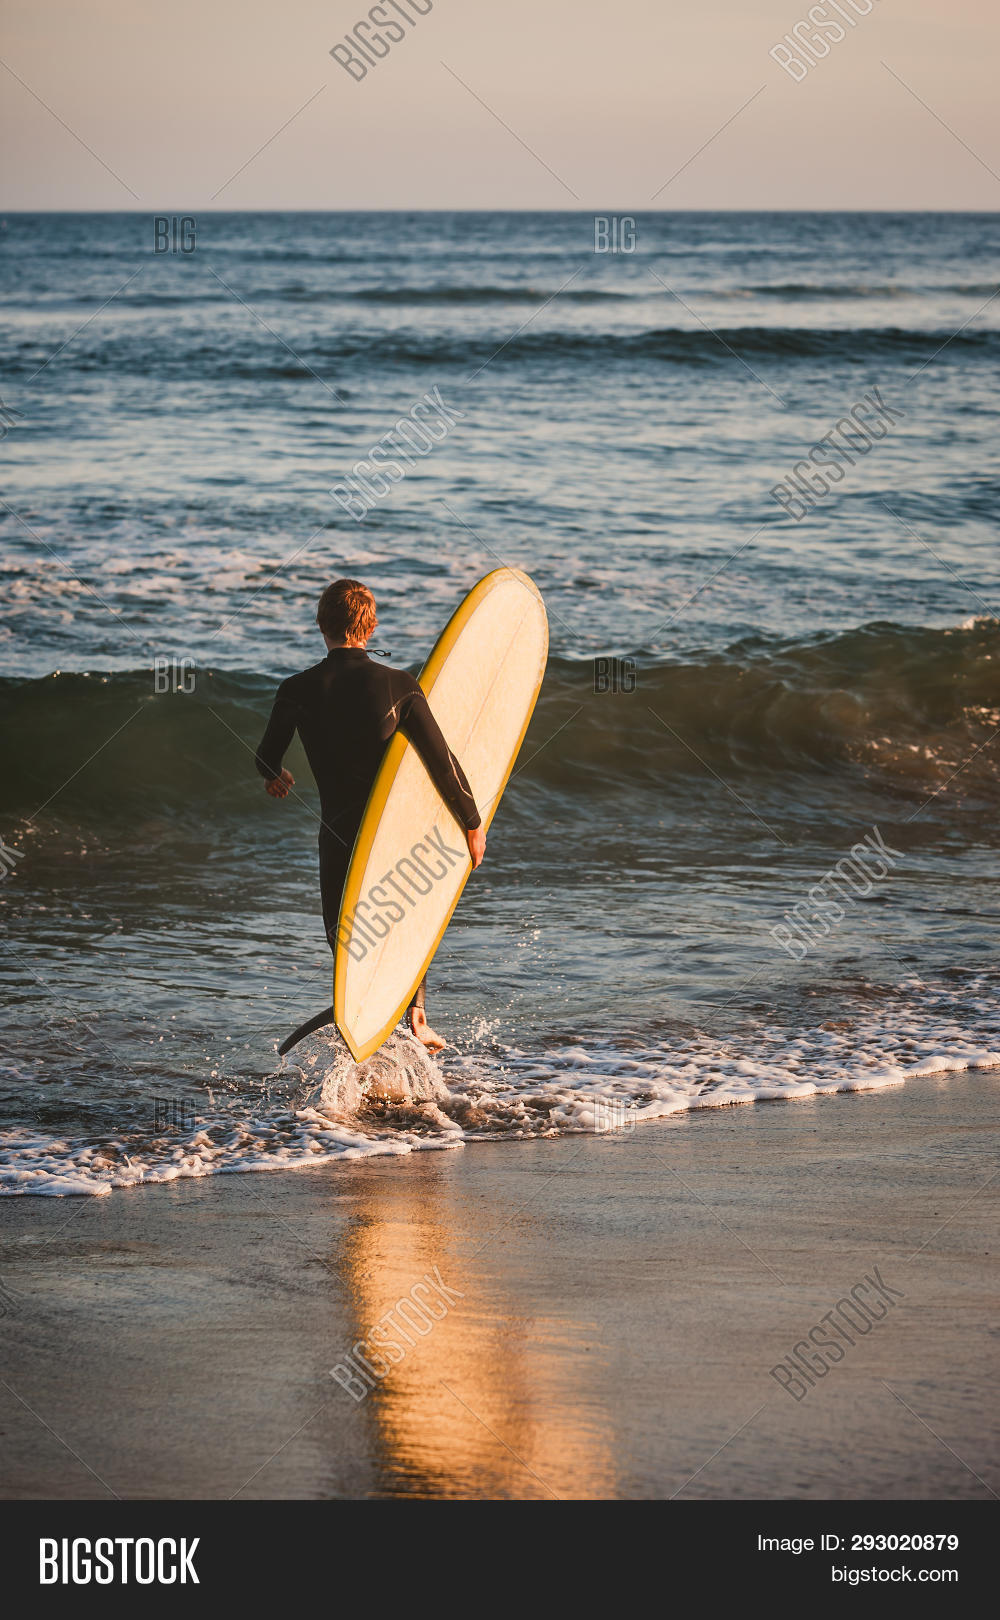 Young Boy In Black Wetsuit Carries His White And Yellow Surfboard Out To Catch Some Waves In The Pac